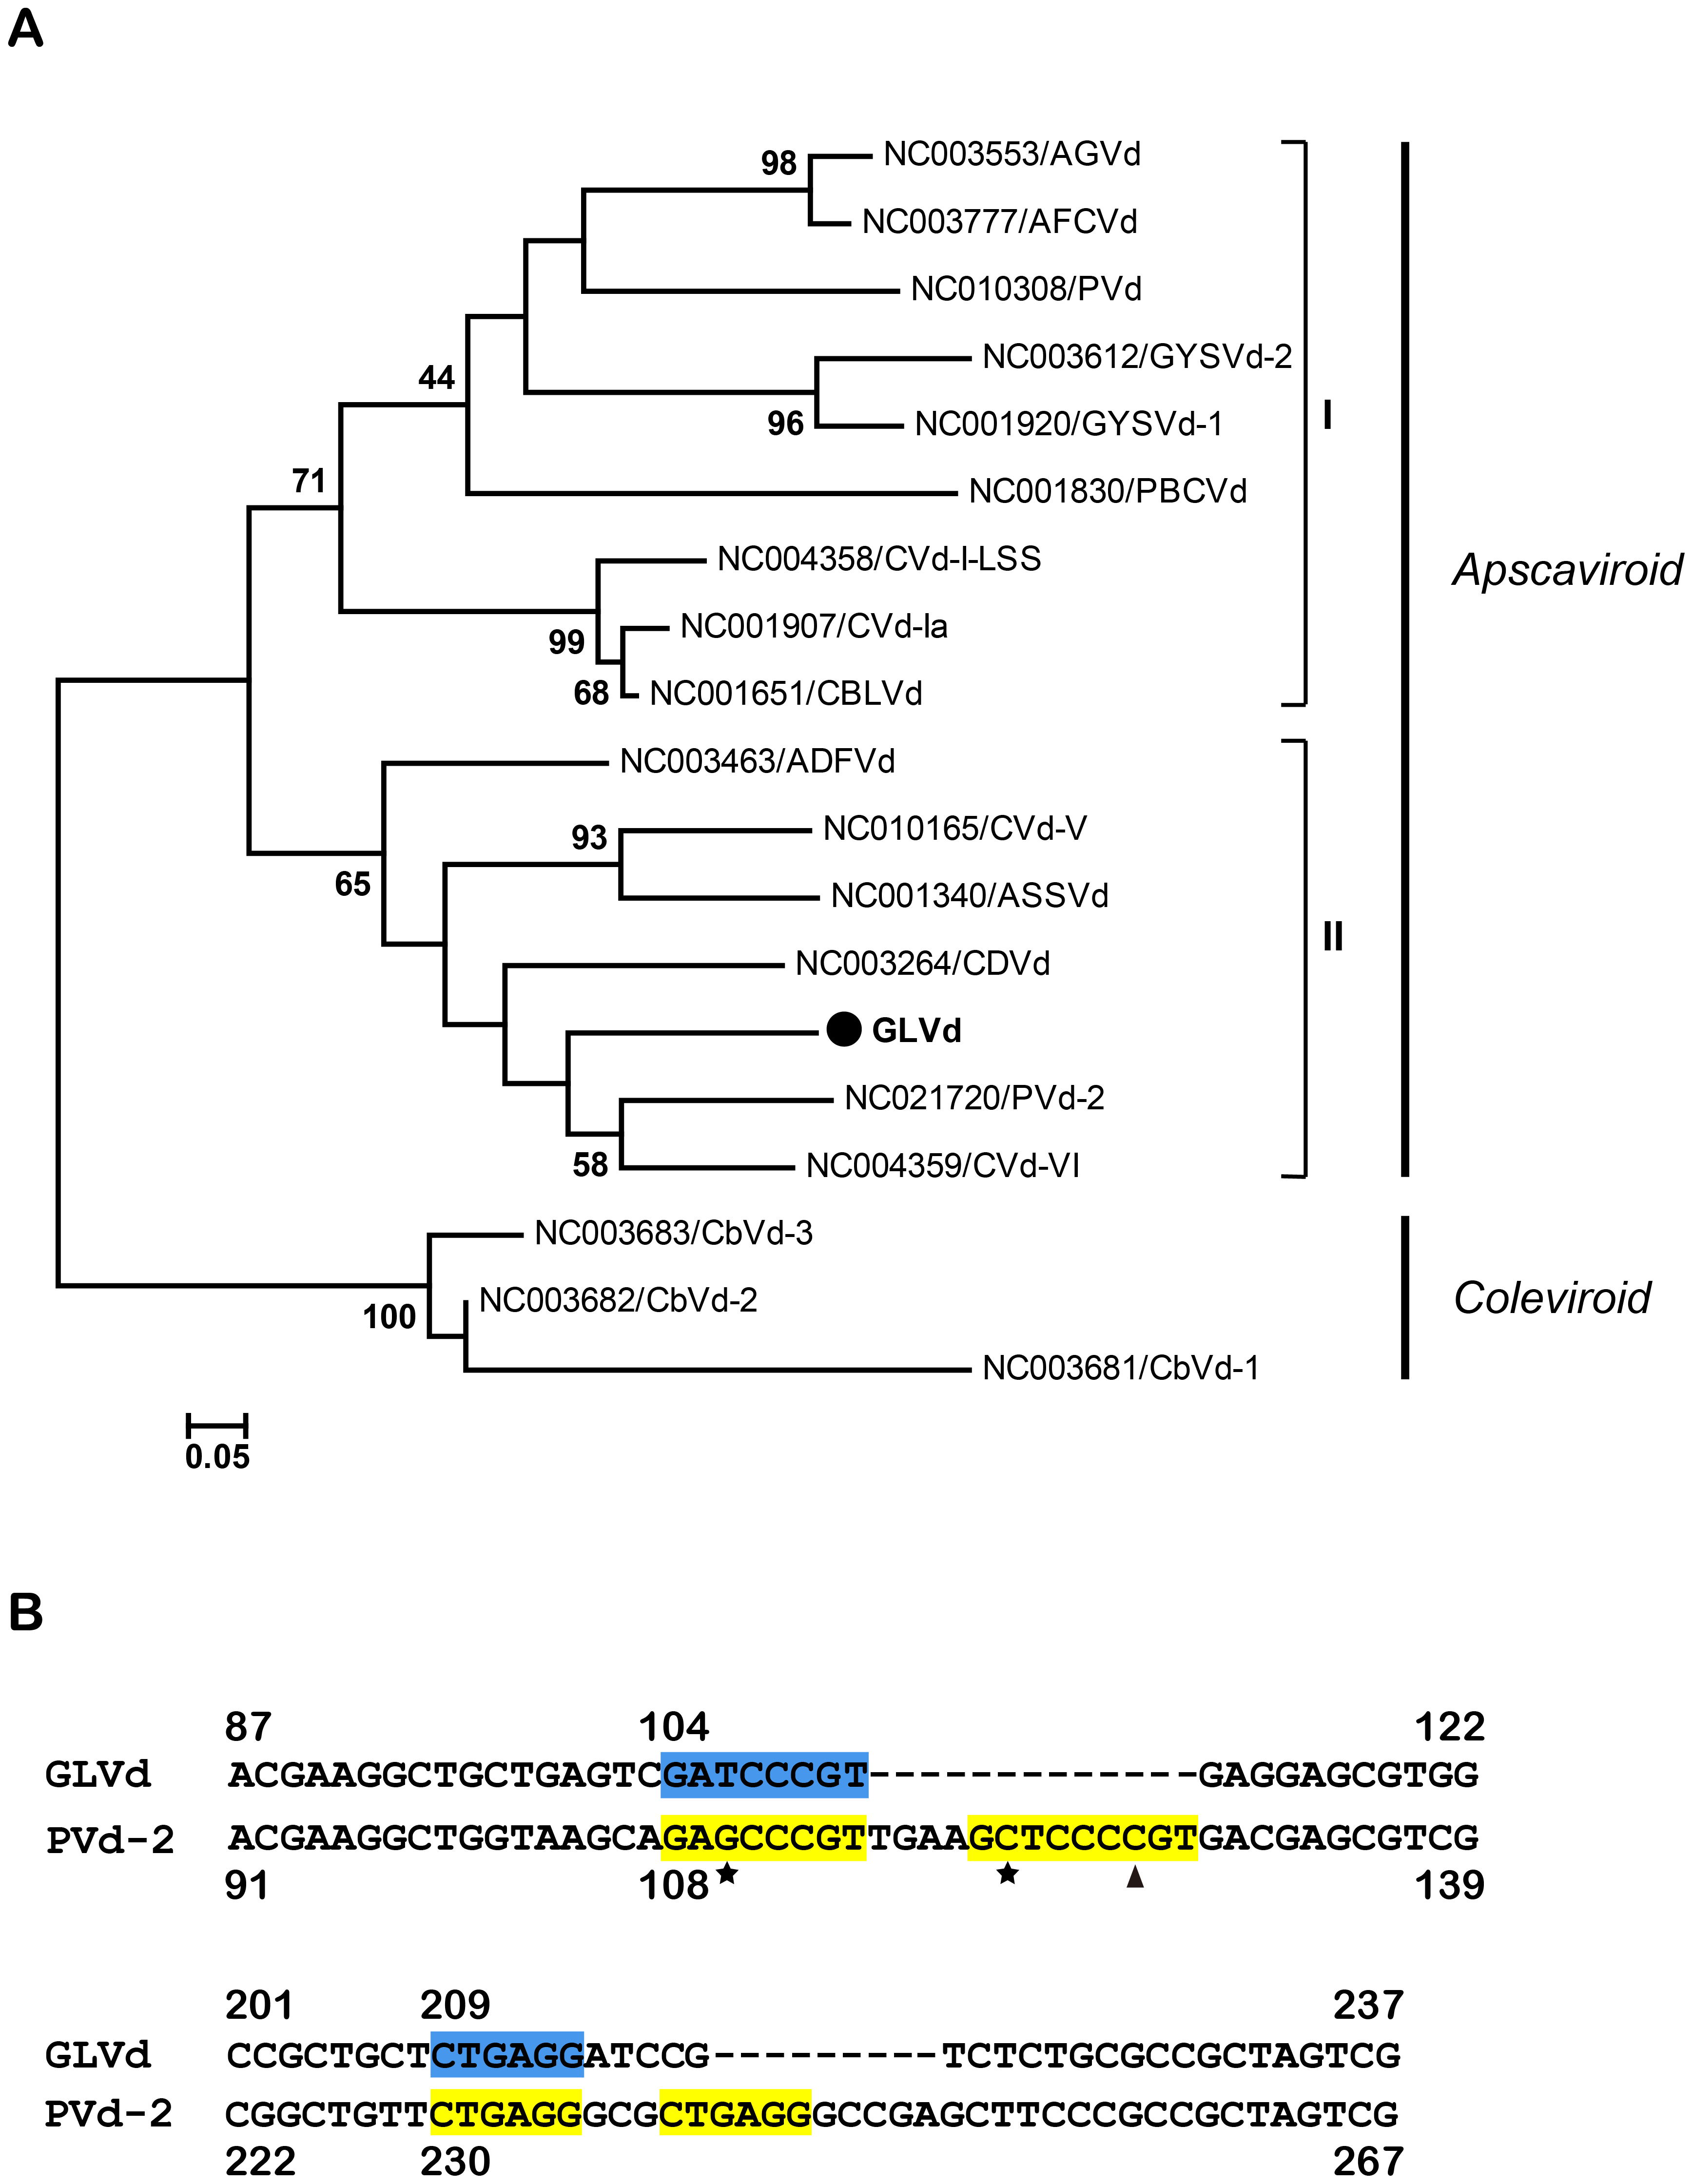 Phylogenetic analysis and alignment of GLVd.